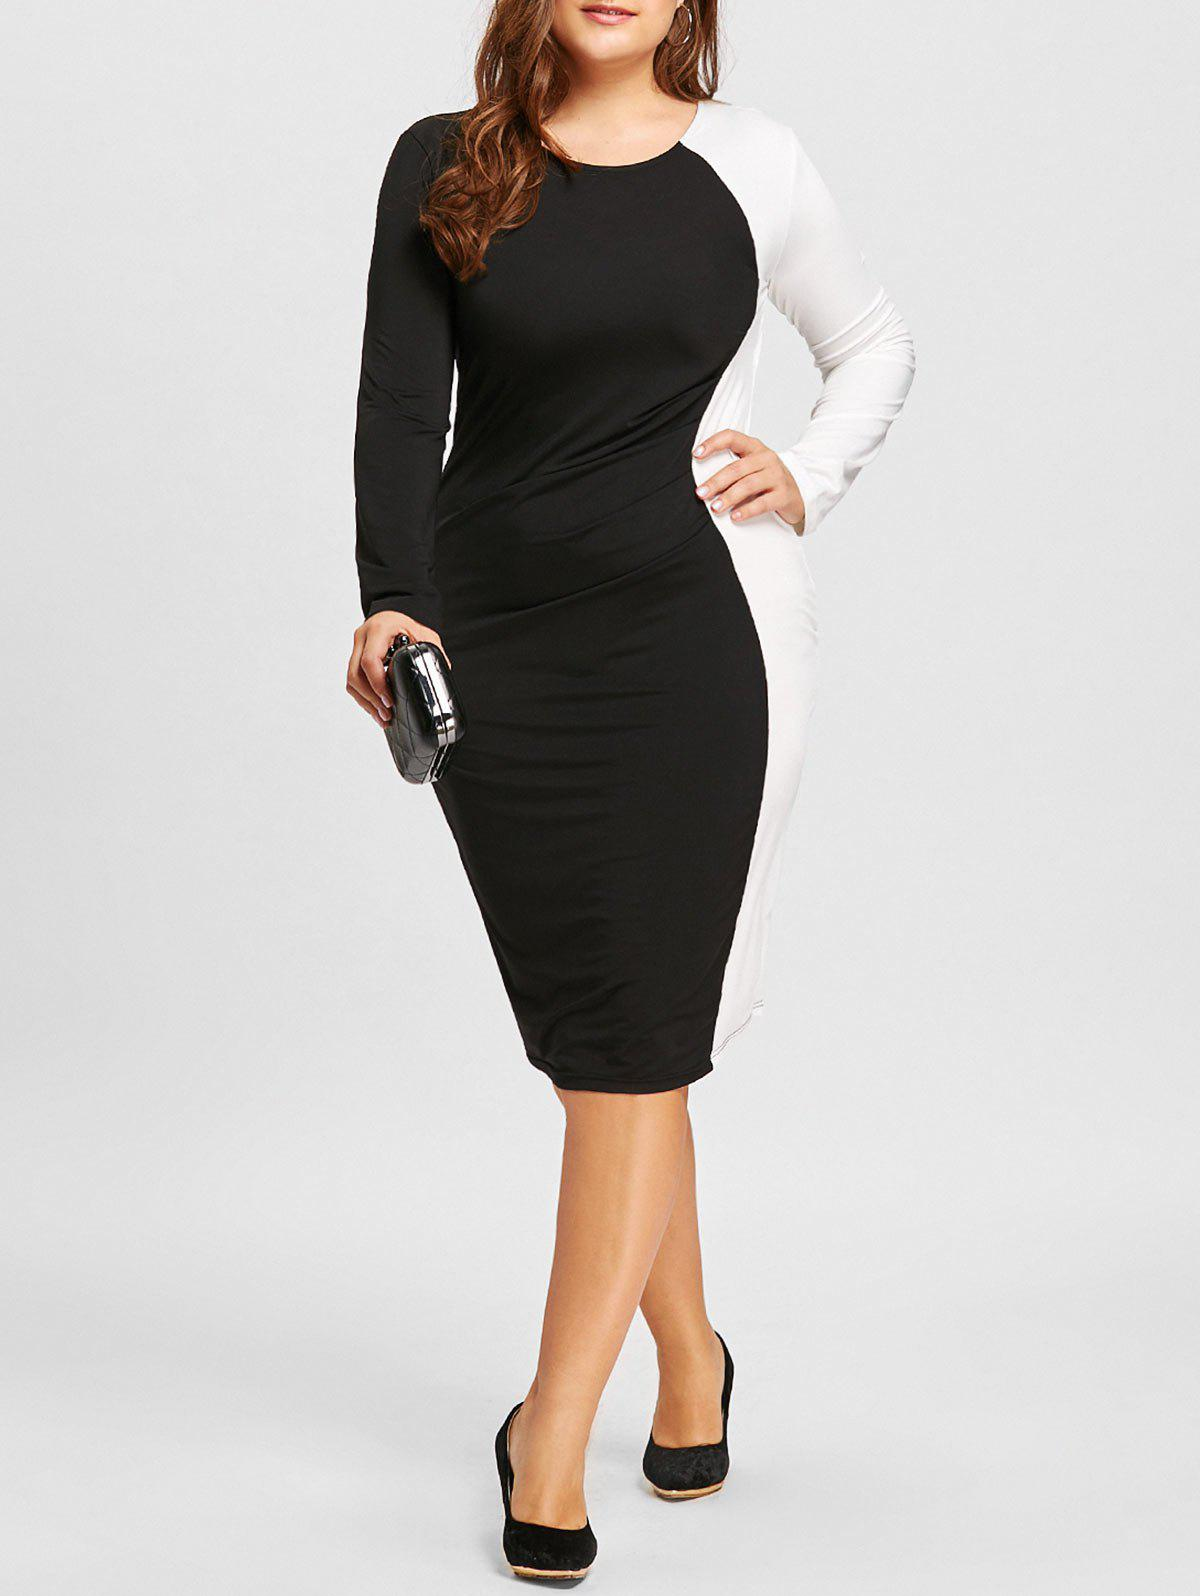 Two Tone Bodycon Plus Size DressWOMEN<br><br>Size: 5XL; Color: WHITE AND BLACK; Style: Casual; Material: Polyester; Silhouette: Bodycon; Dresses Length: Knee-Length; Neckline: Round Collar; Sleeve Length: Long Sleeves; Embellishment: Ruched; Pattern Type: Others; With Belt: No; Season: Fall,Spring; Weight: 0.3700kg; Package Contents: 1 x Dress;